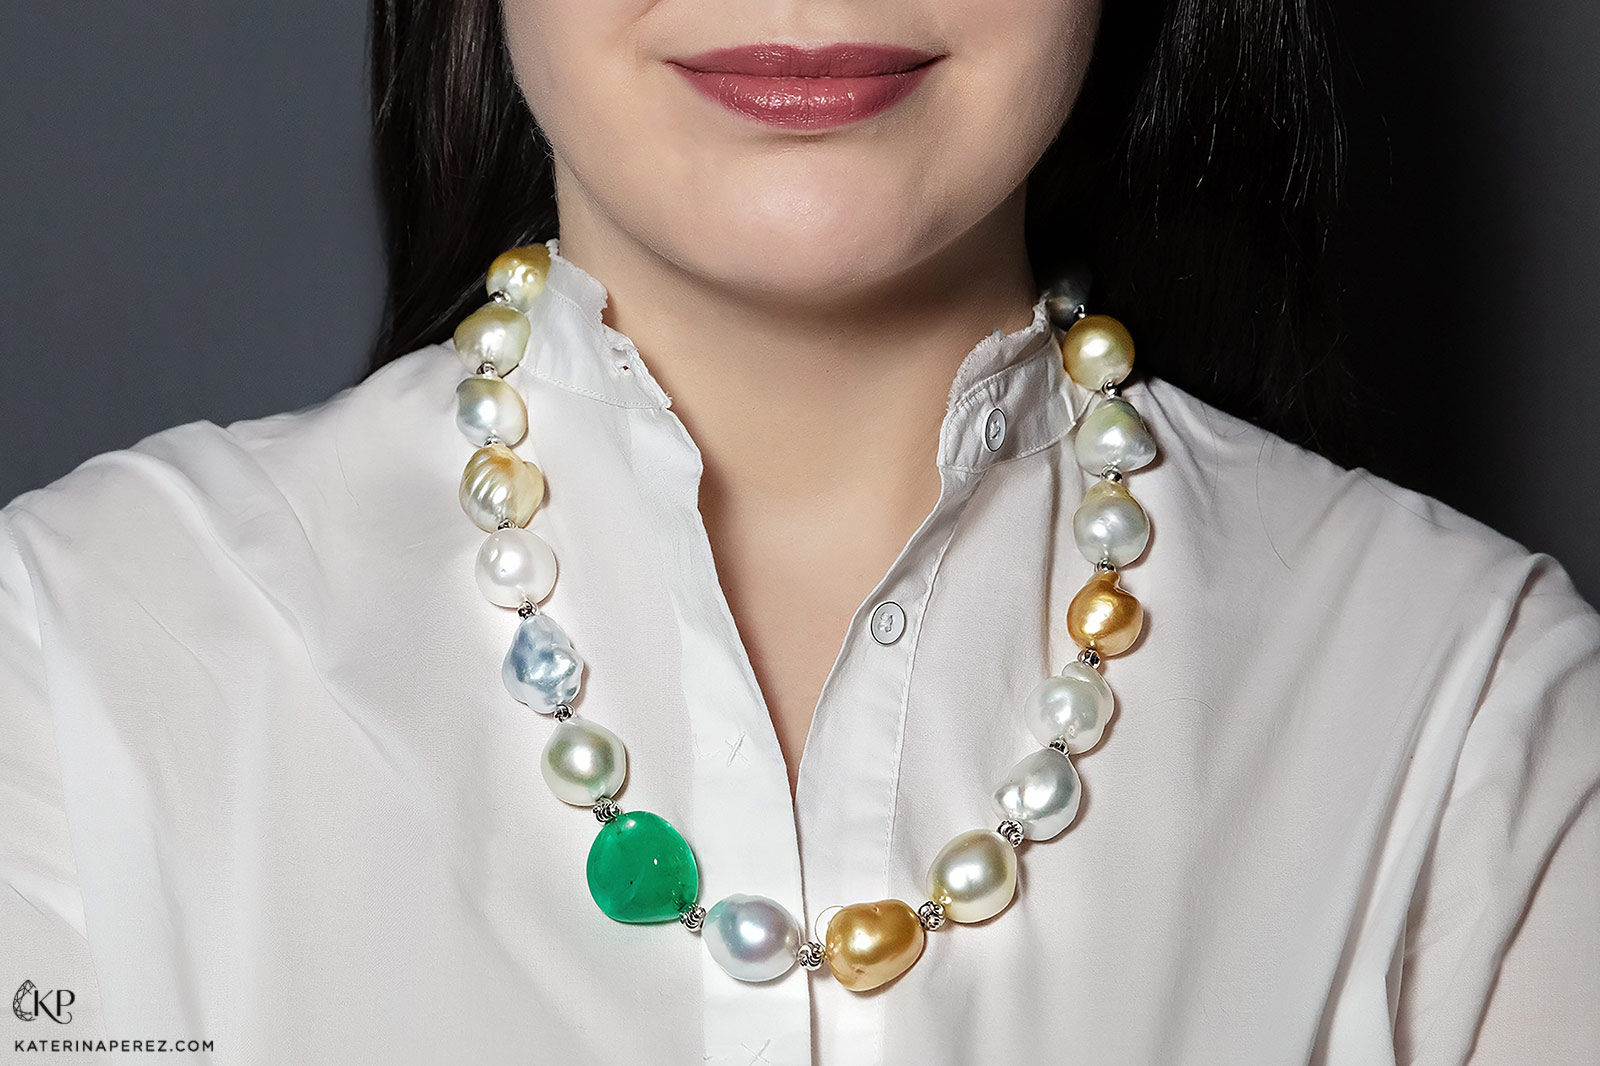 Alexander Laut necklace with 56ct Colombian emerald and South Sea pearls